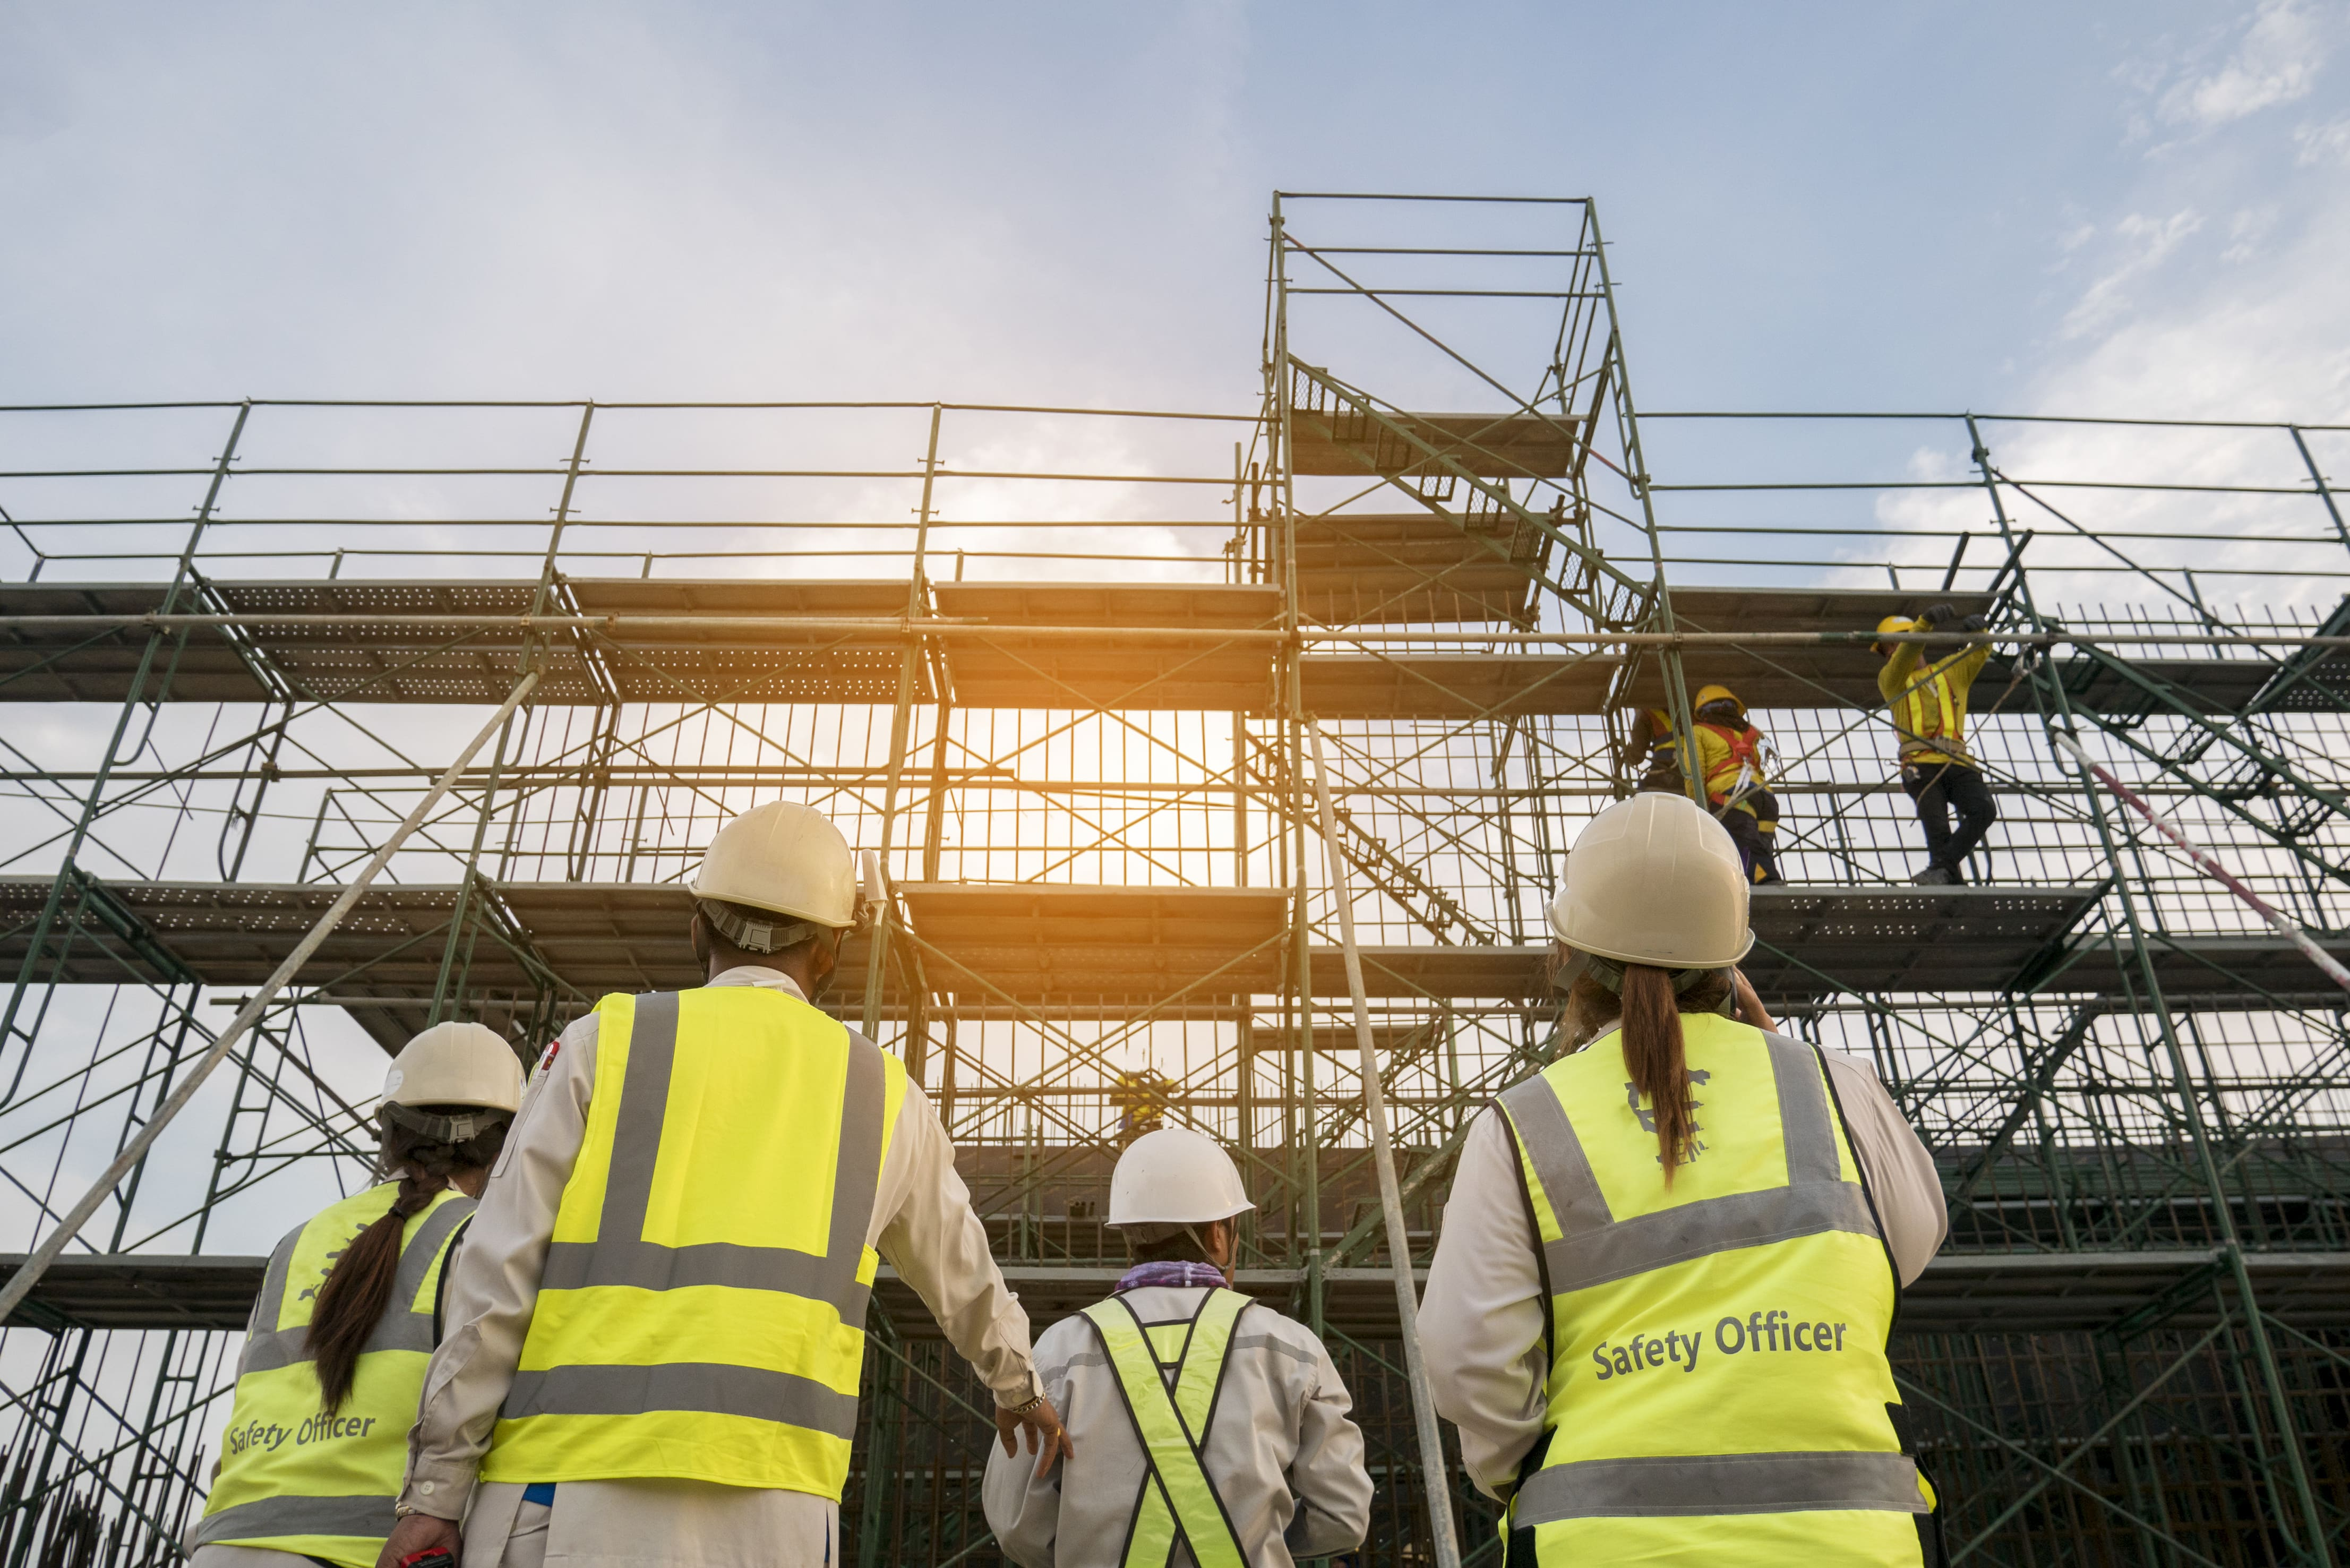 Scaffolding company penalised for terminating employee over raising safety concerns